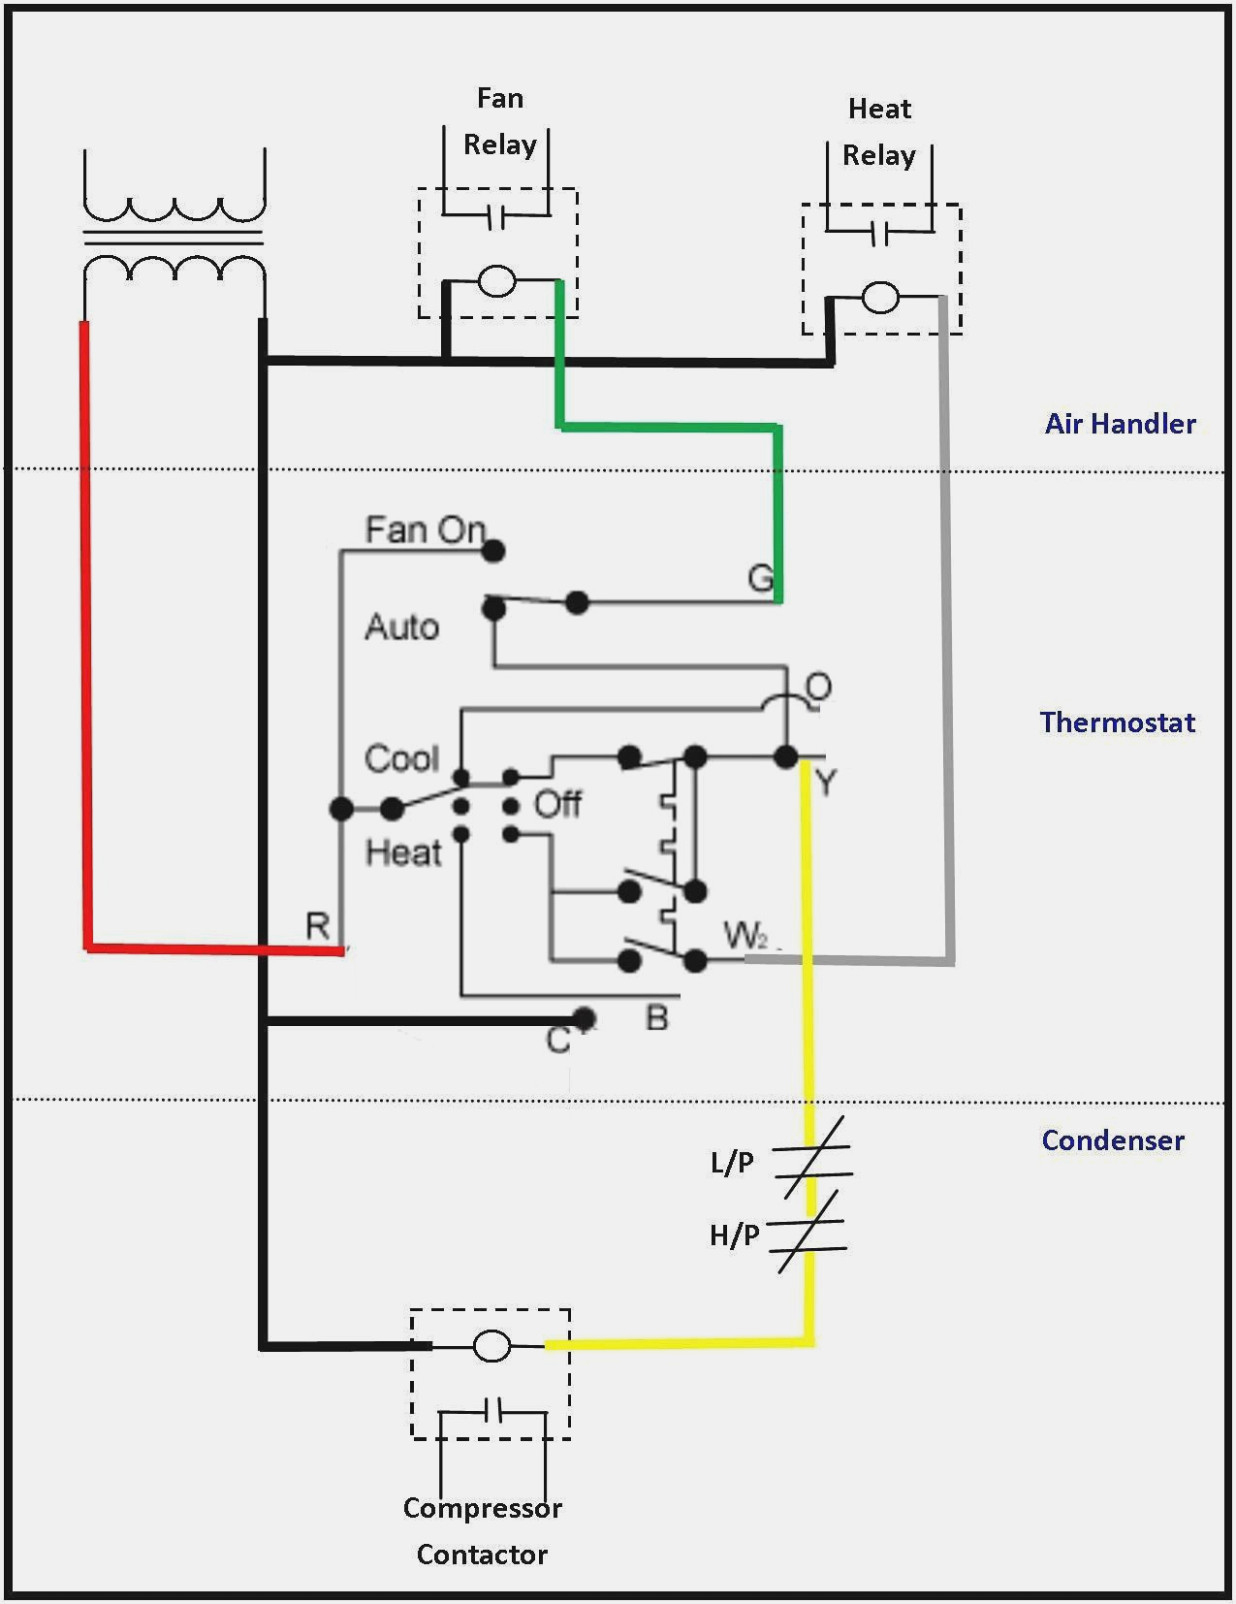 Oil Fired Furnace Wiring Diagram | Wiring Diagram - Oil Furnace Wiring Diagram